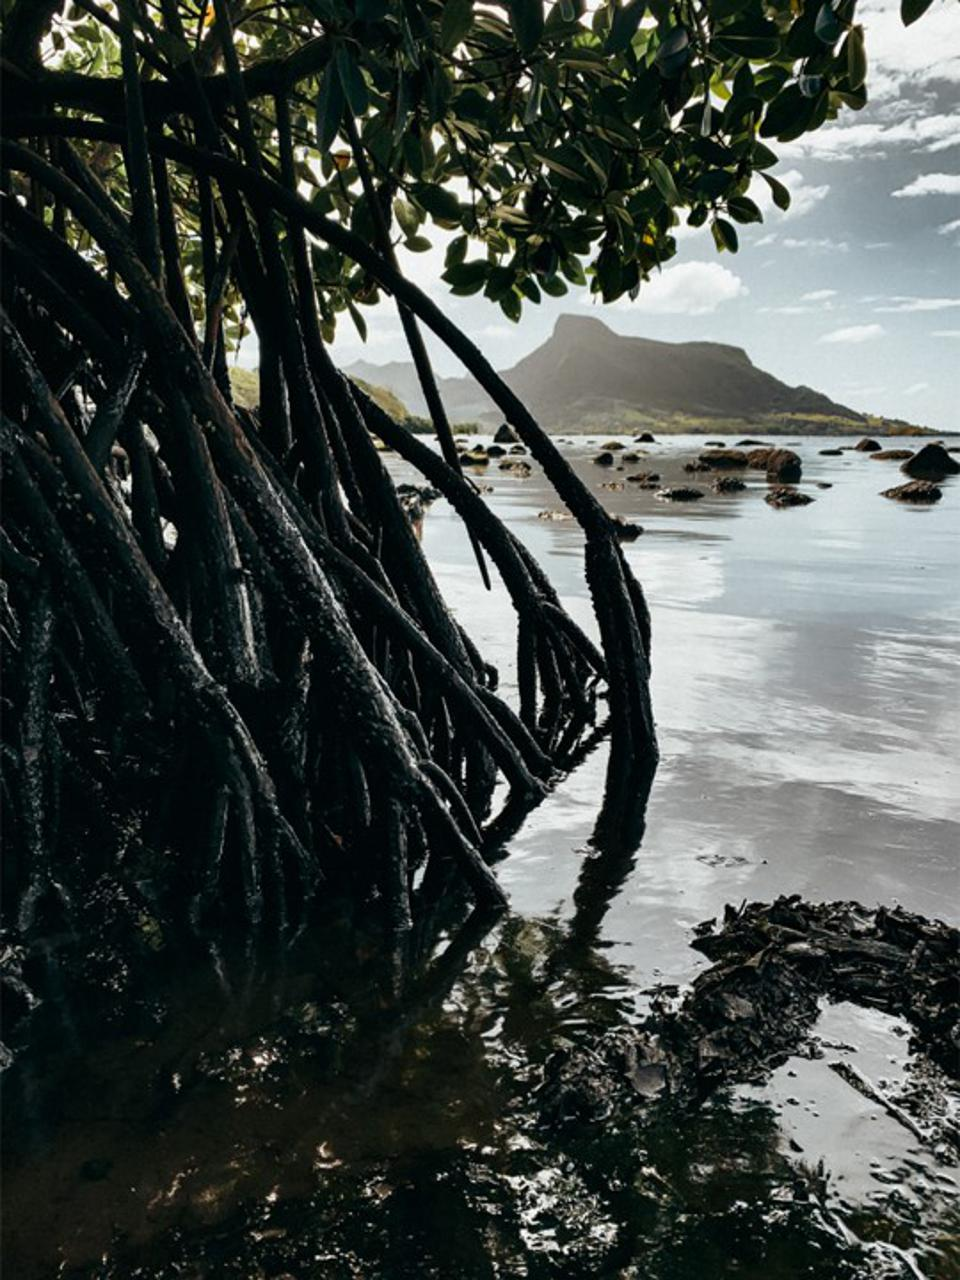 Mauritius has a range of different coastlines in the region of the oil spill.  Seen here is the oil-drenched mangroves of Point d'Esny with the famous Lion Mountain in the background.